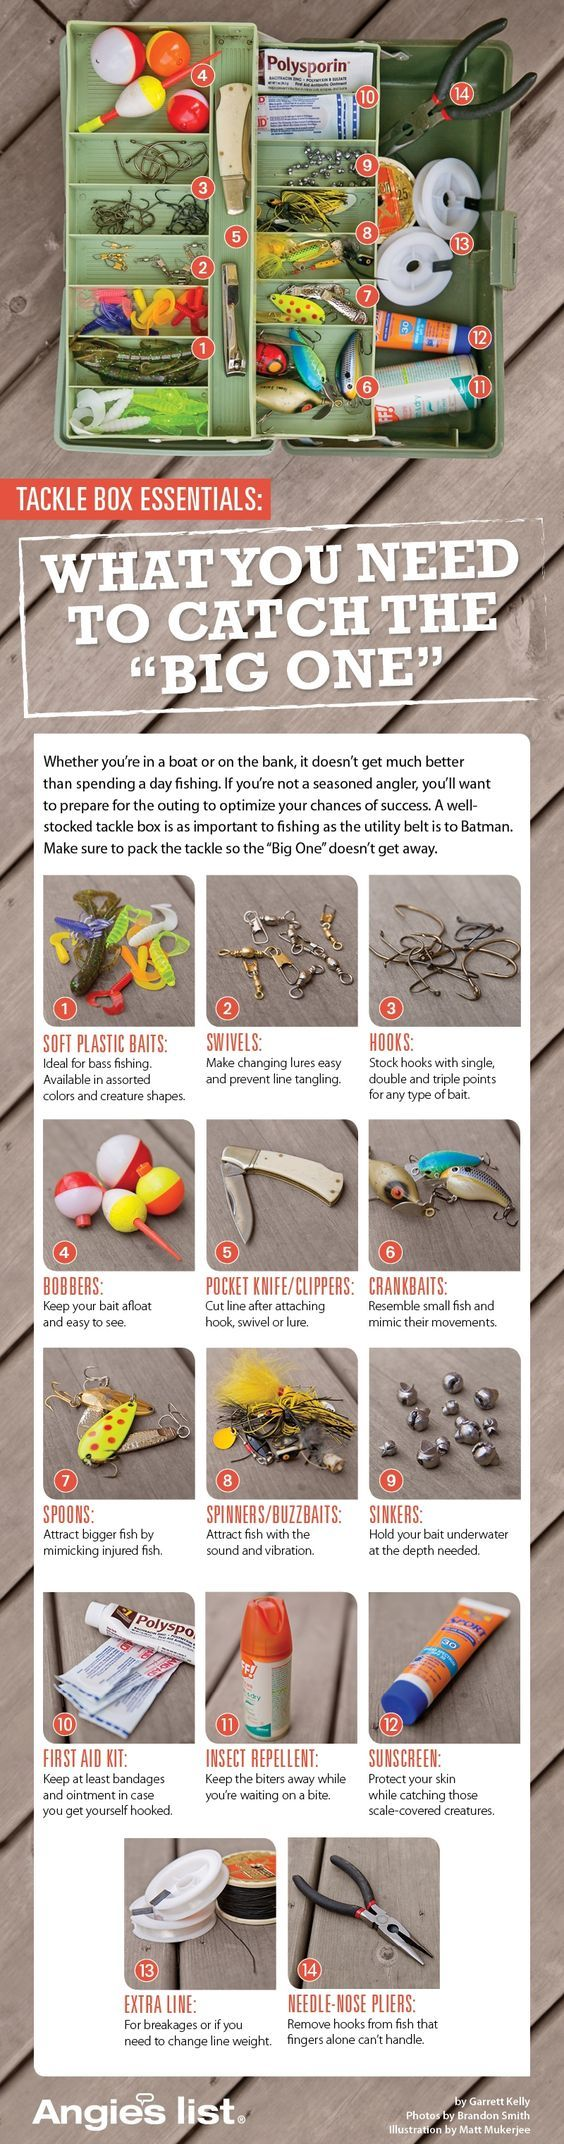 Best 25 fishing tackle ideas on pinterest fishing tips for Essential fishing gear